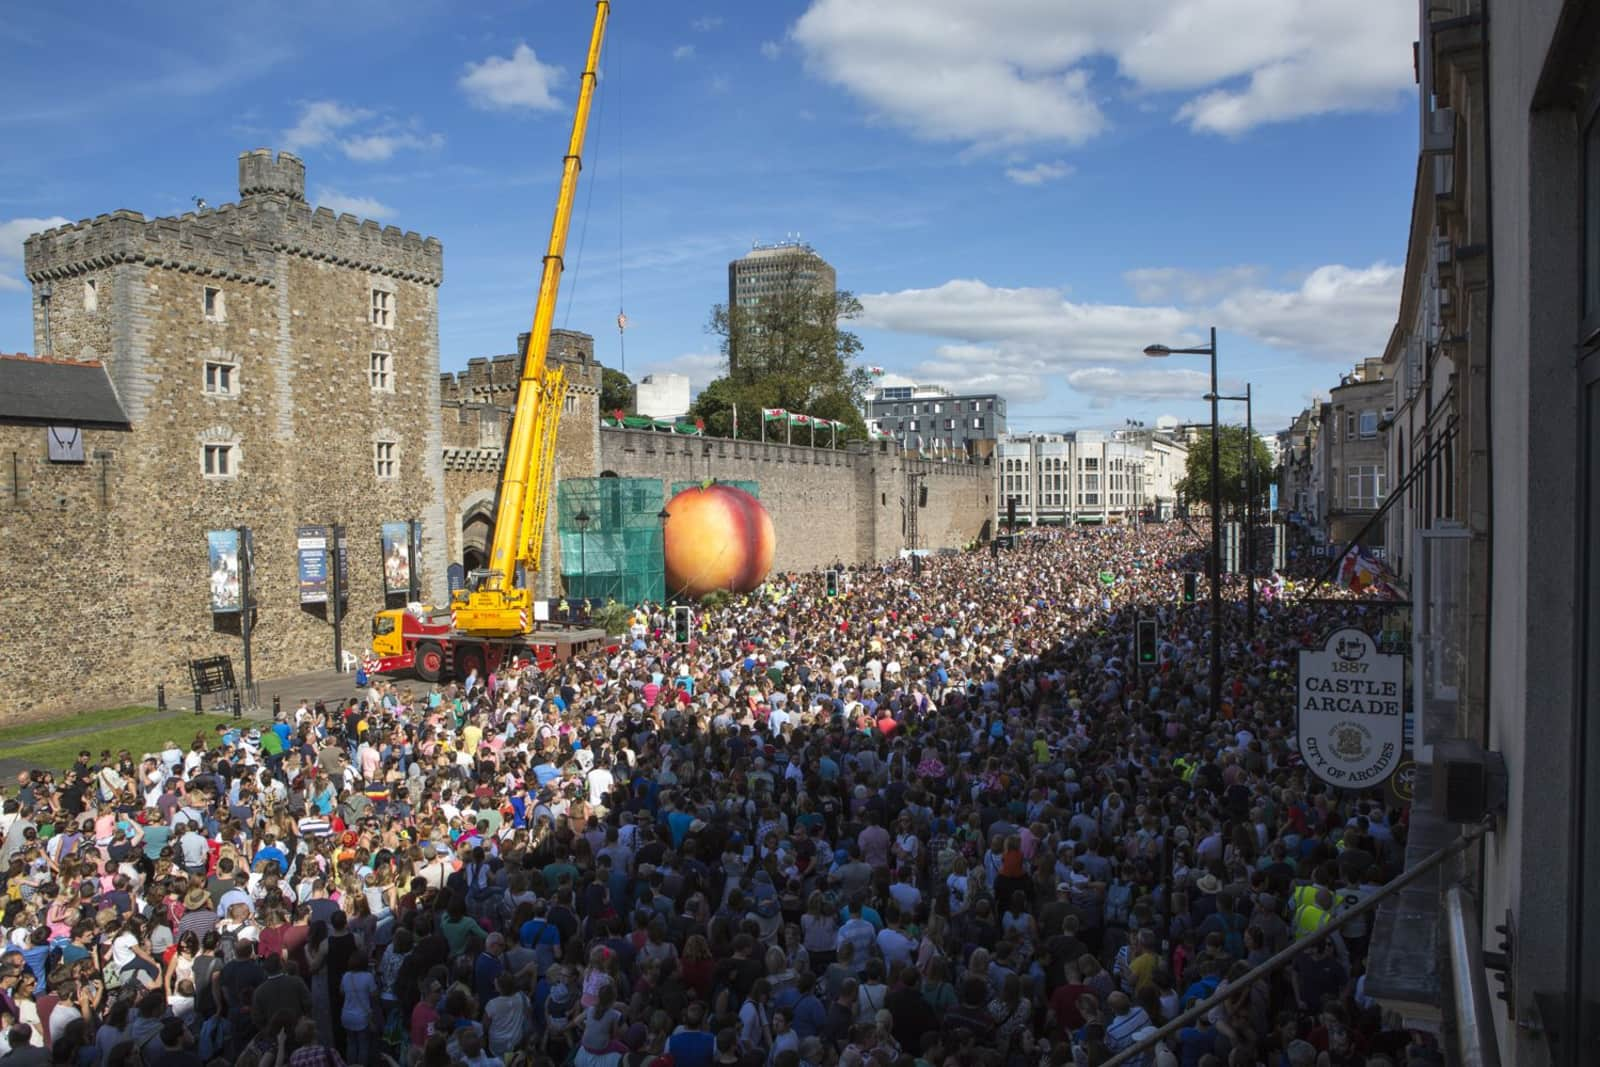 Thousands of people from across Wales and beyond came to experience the mass live event